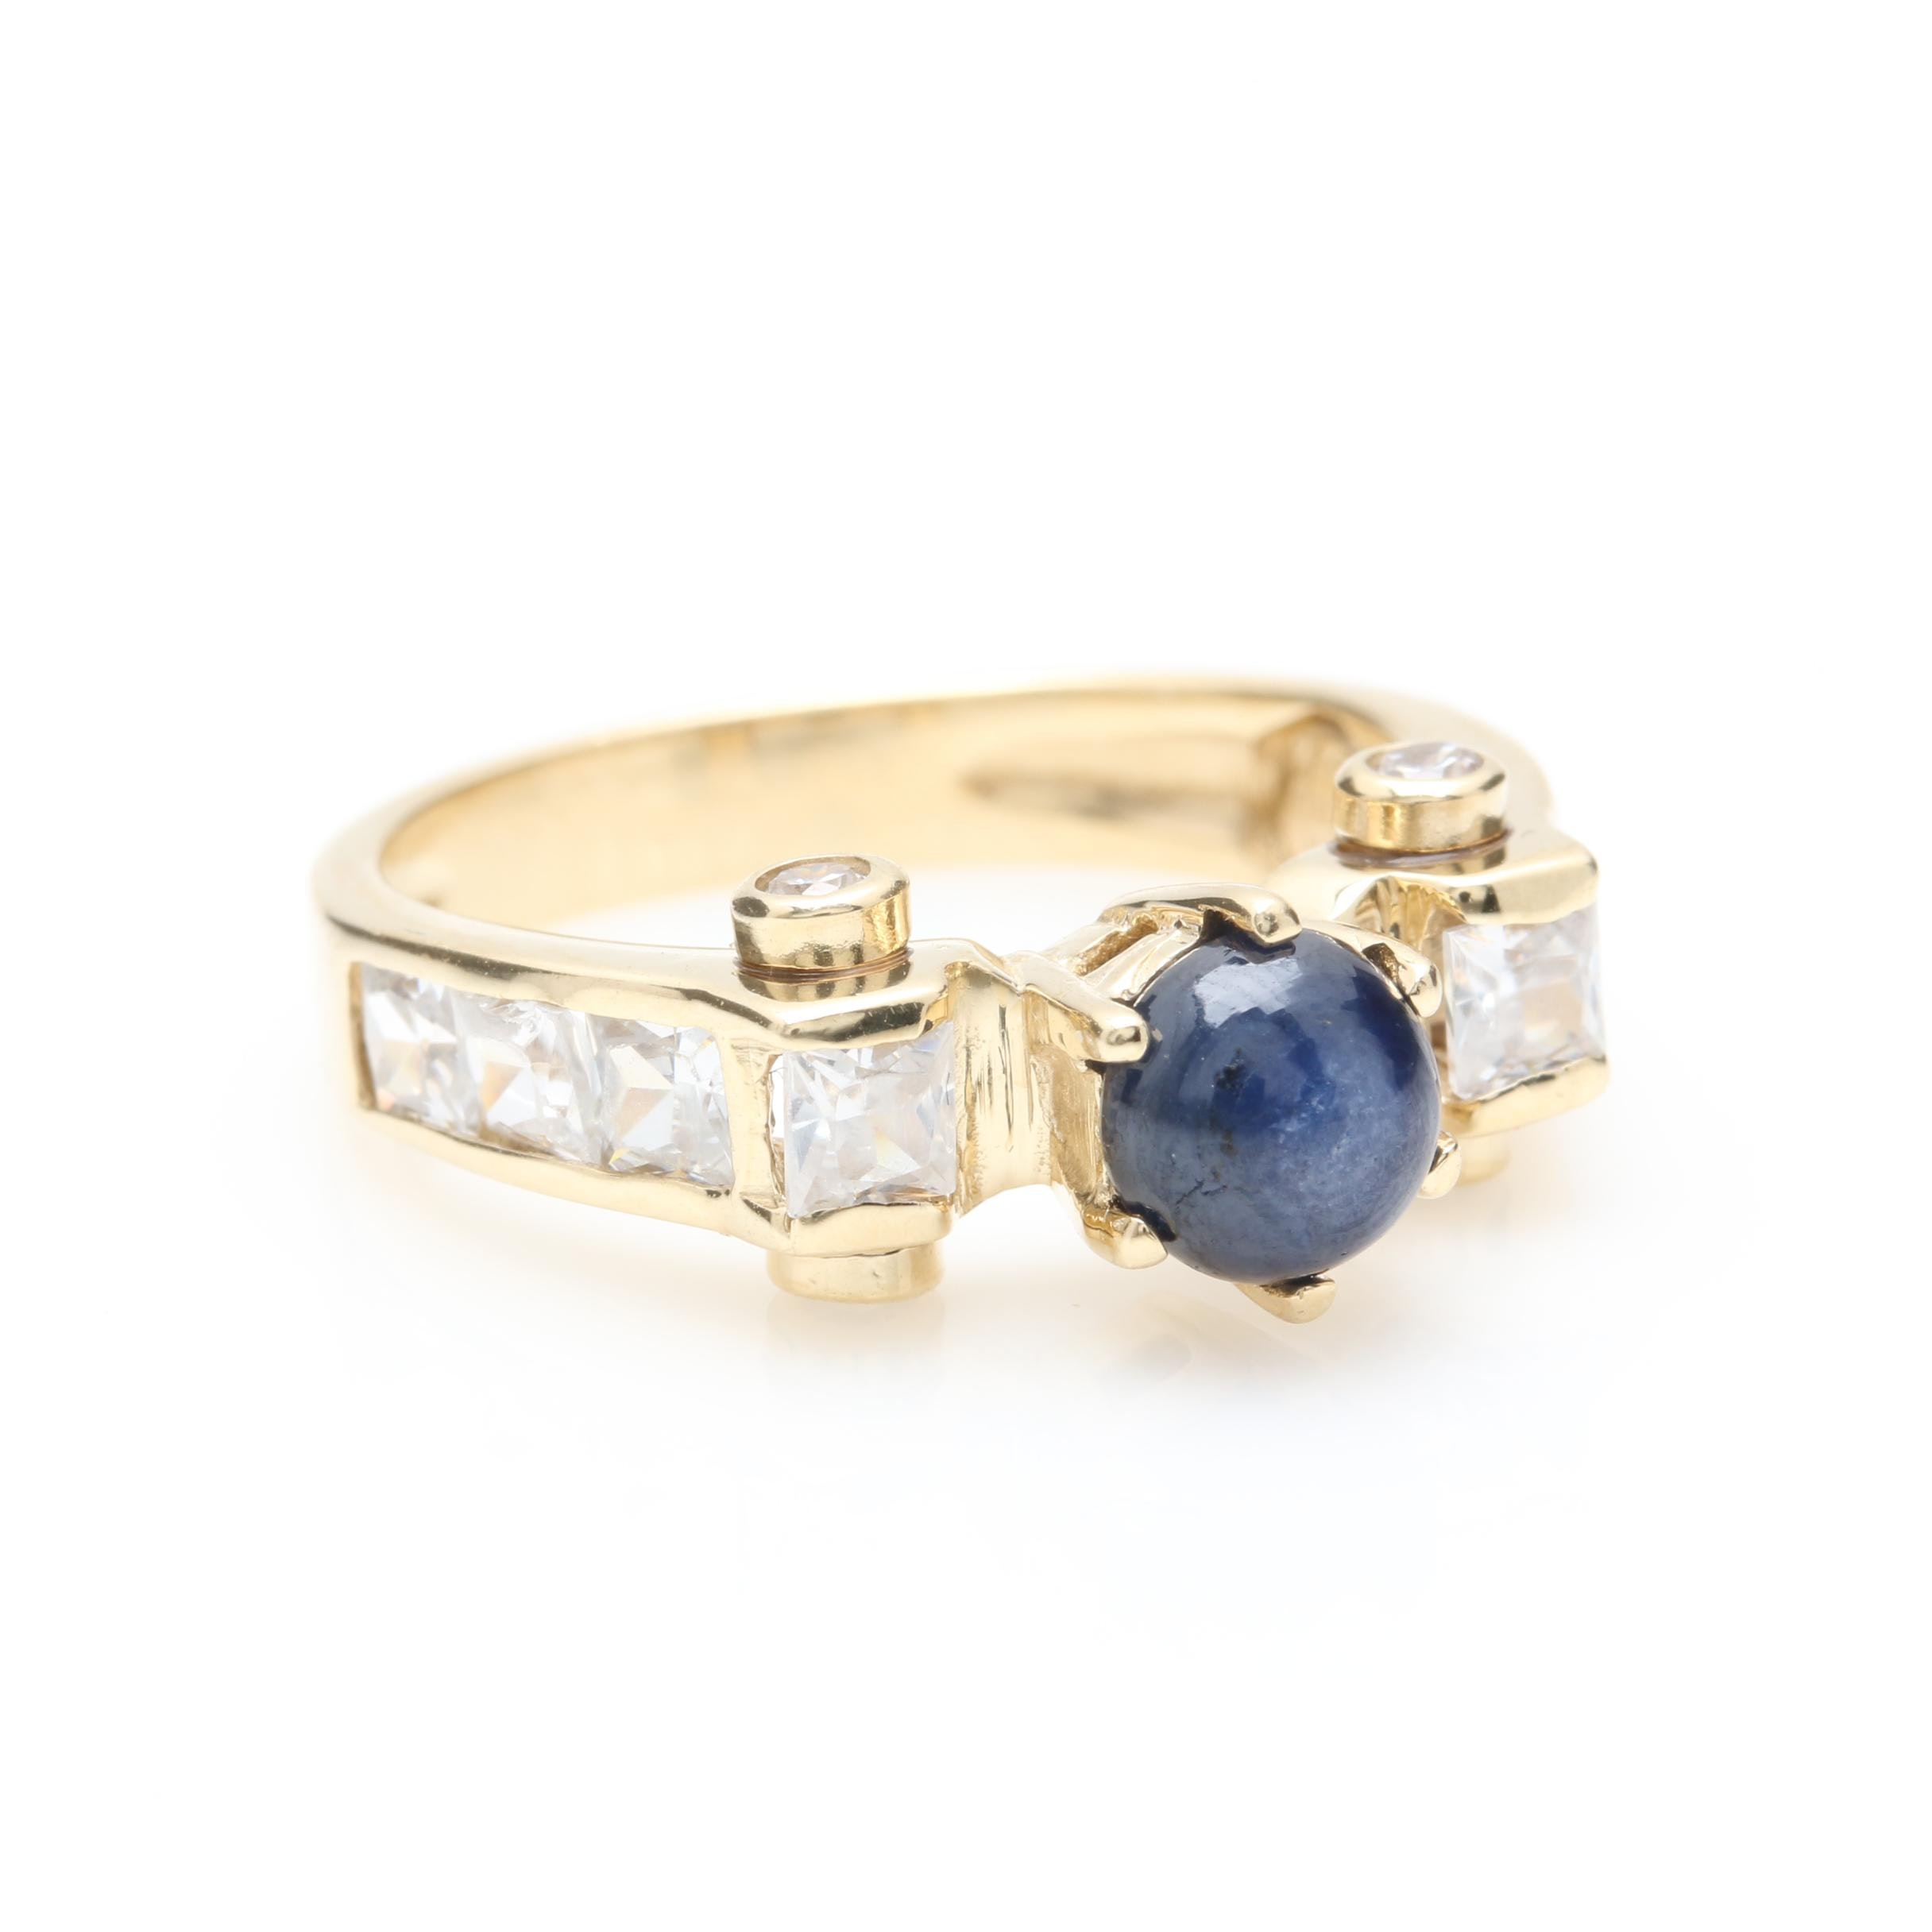 14K Yellow Gold Star Sapphire and Cubic Zirconia Ring